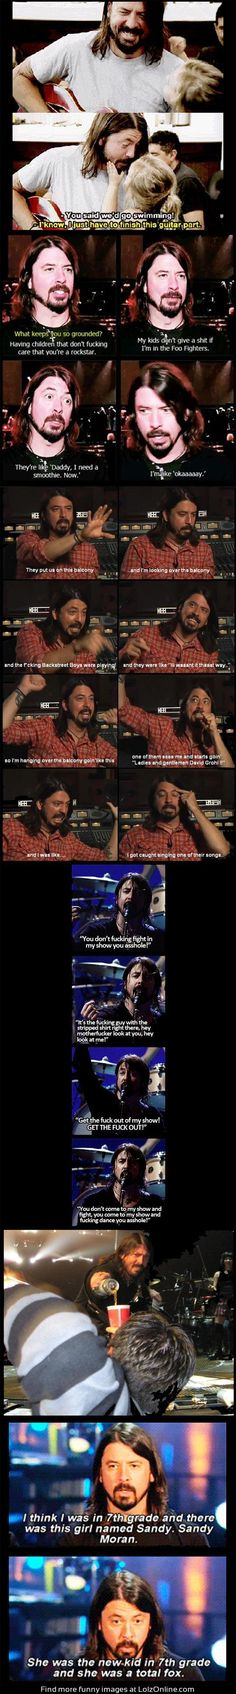 This is why Dave Grohl is awesome